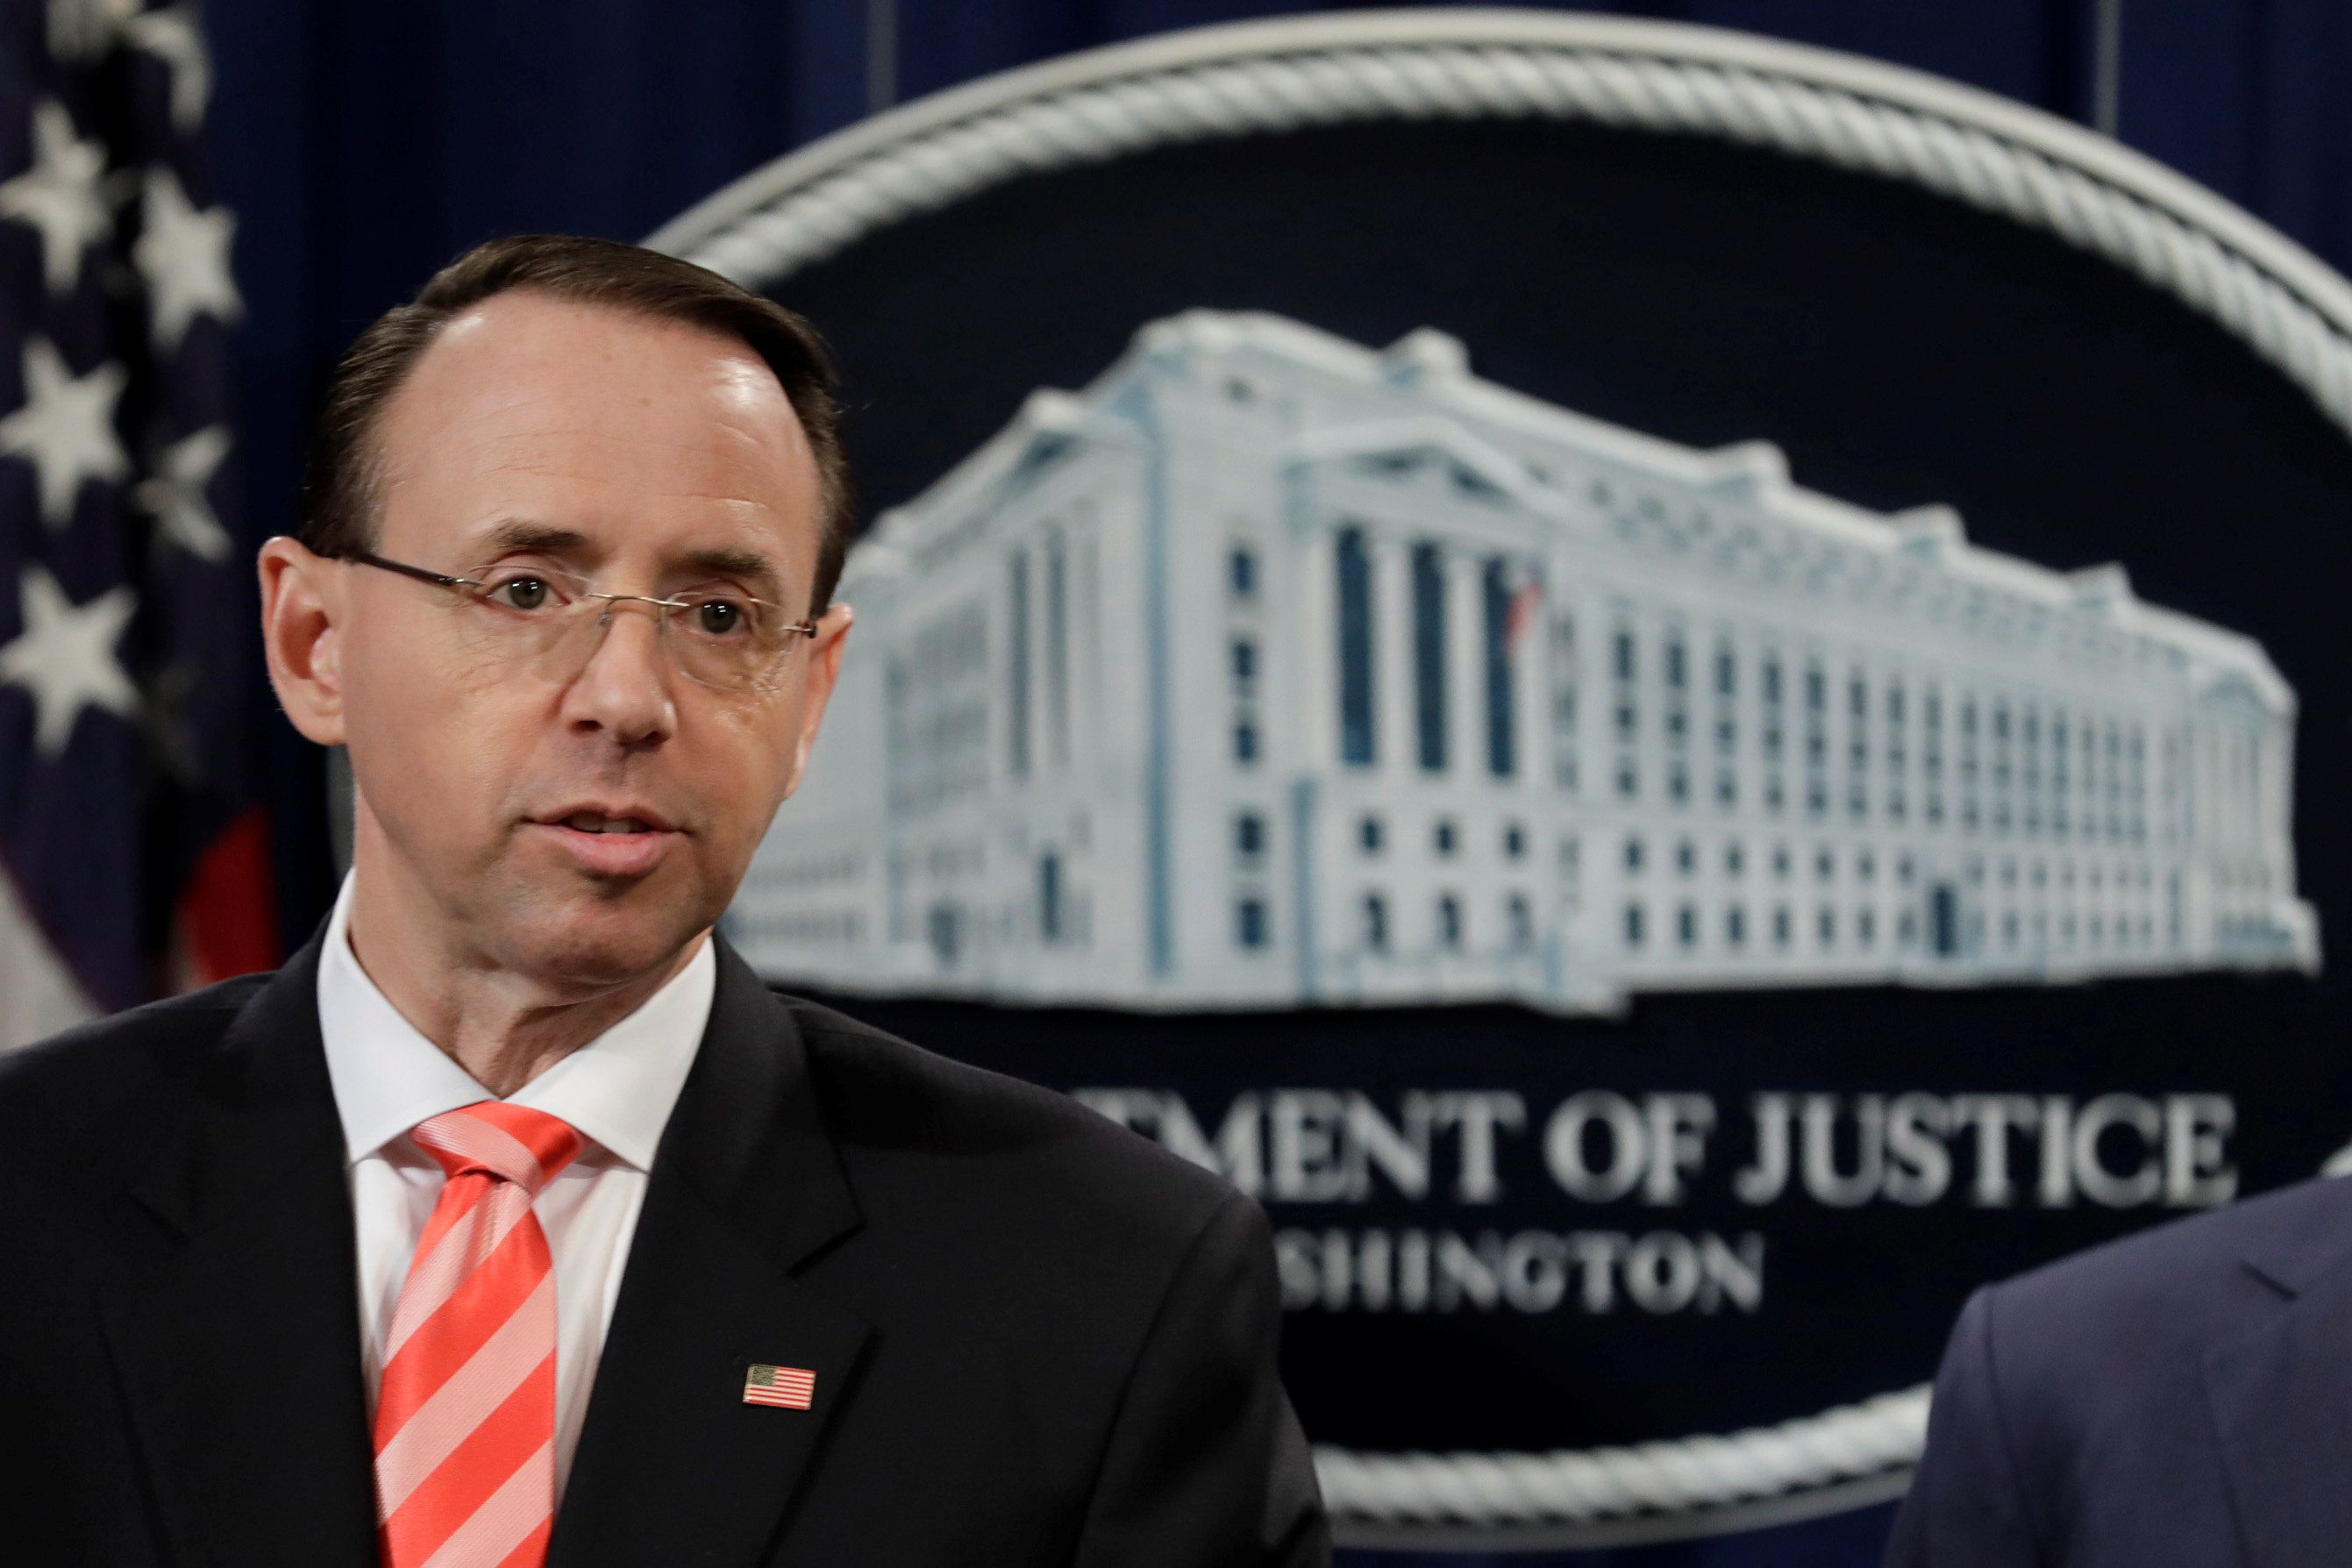 Deputy AG Rosenstein: Impeachment effort against him amounts to 'extortion'